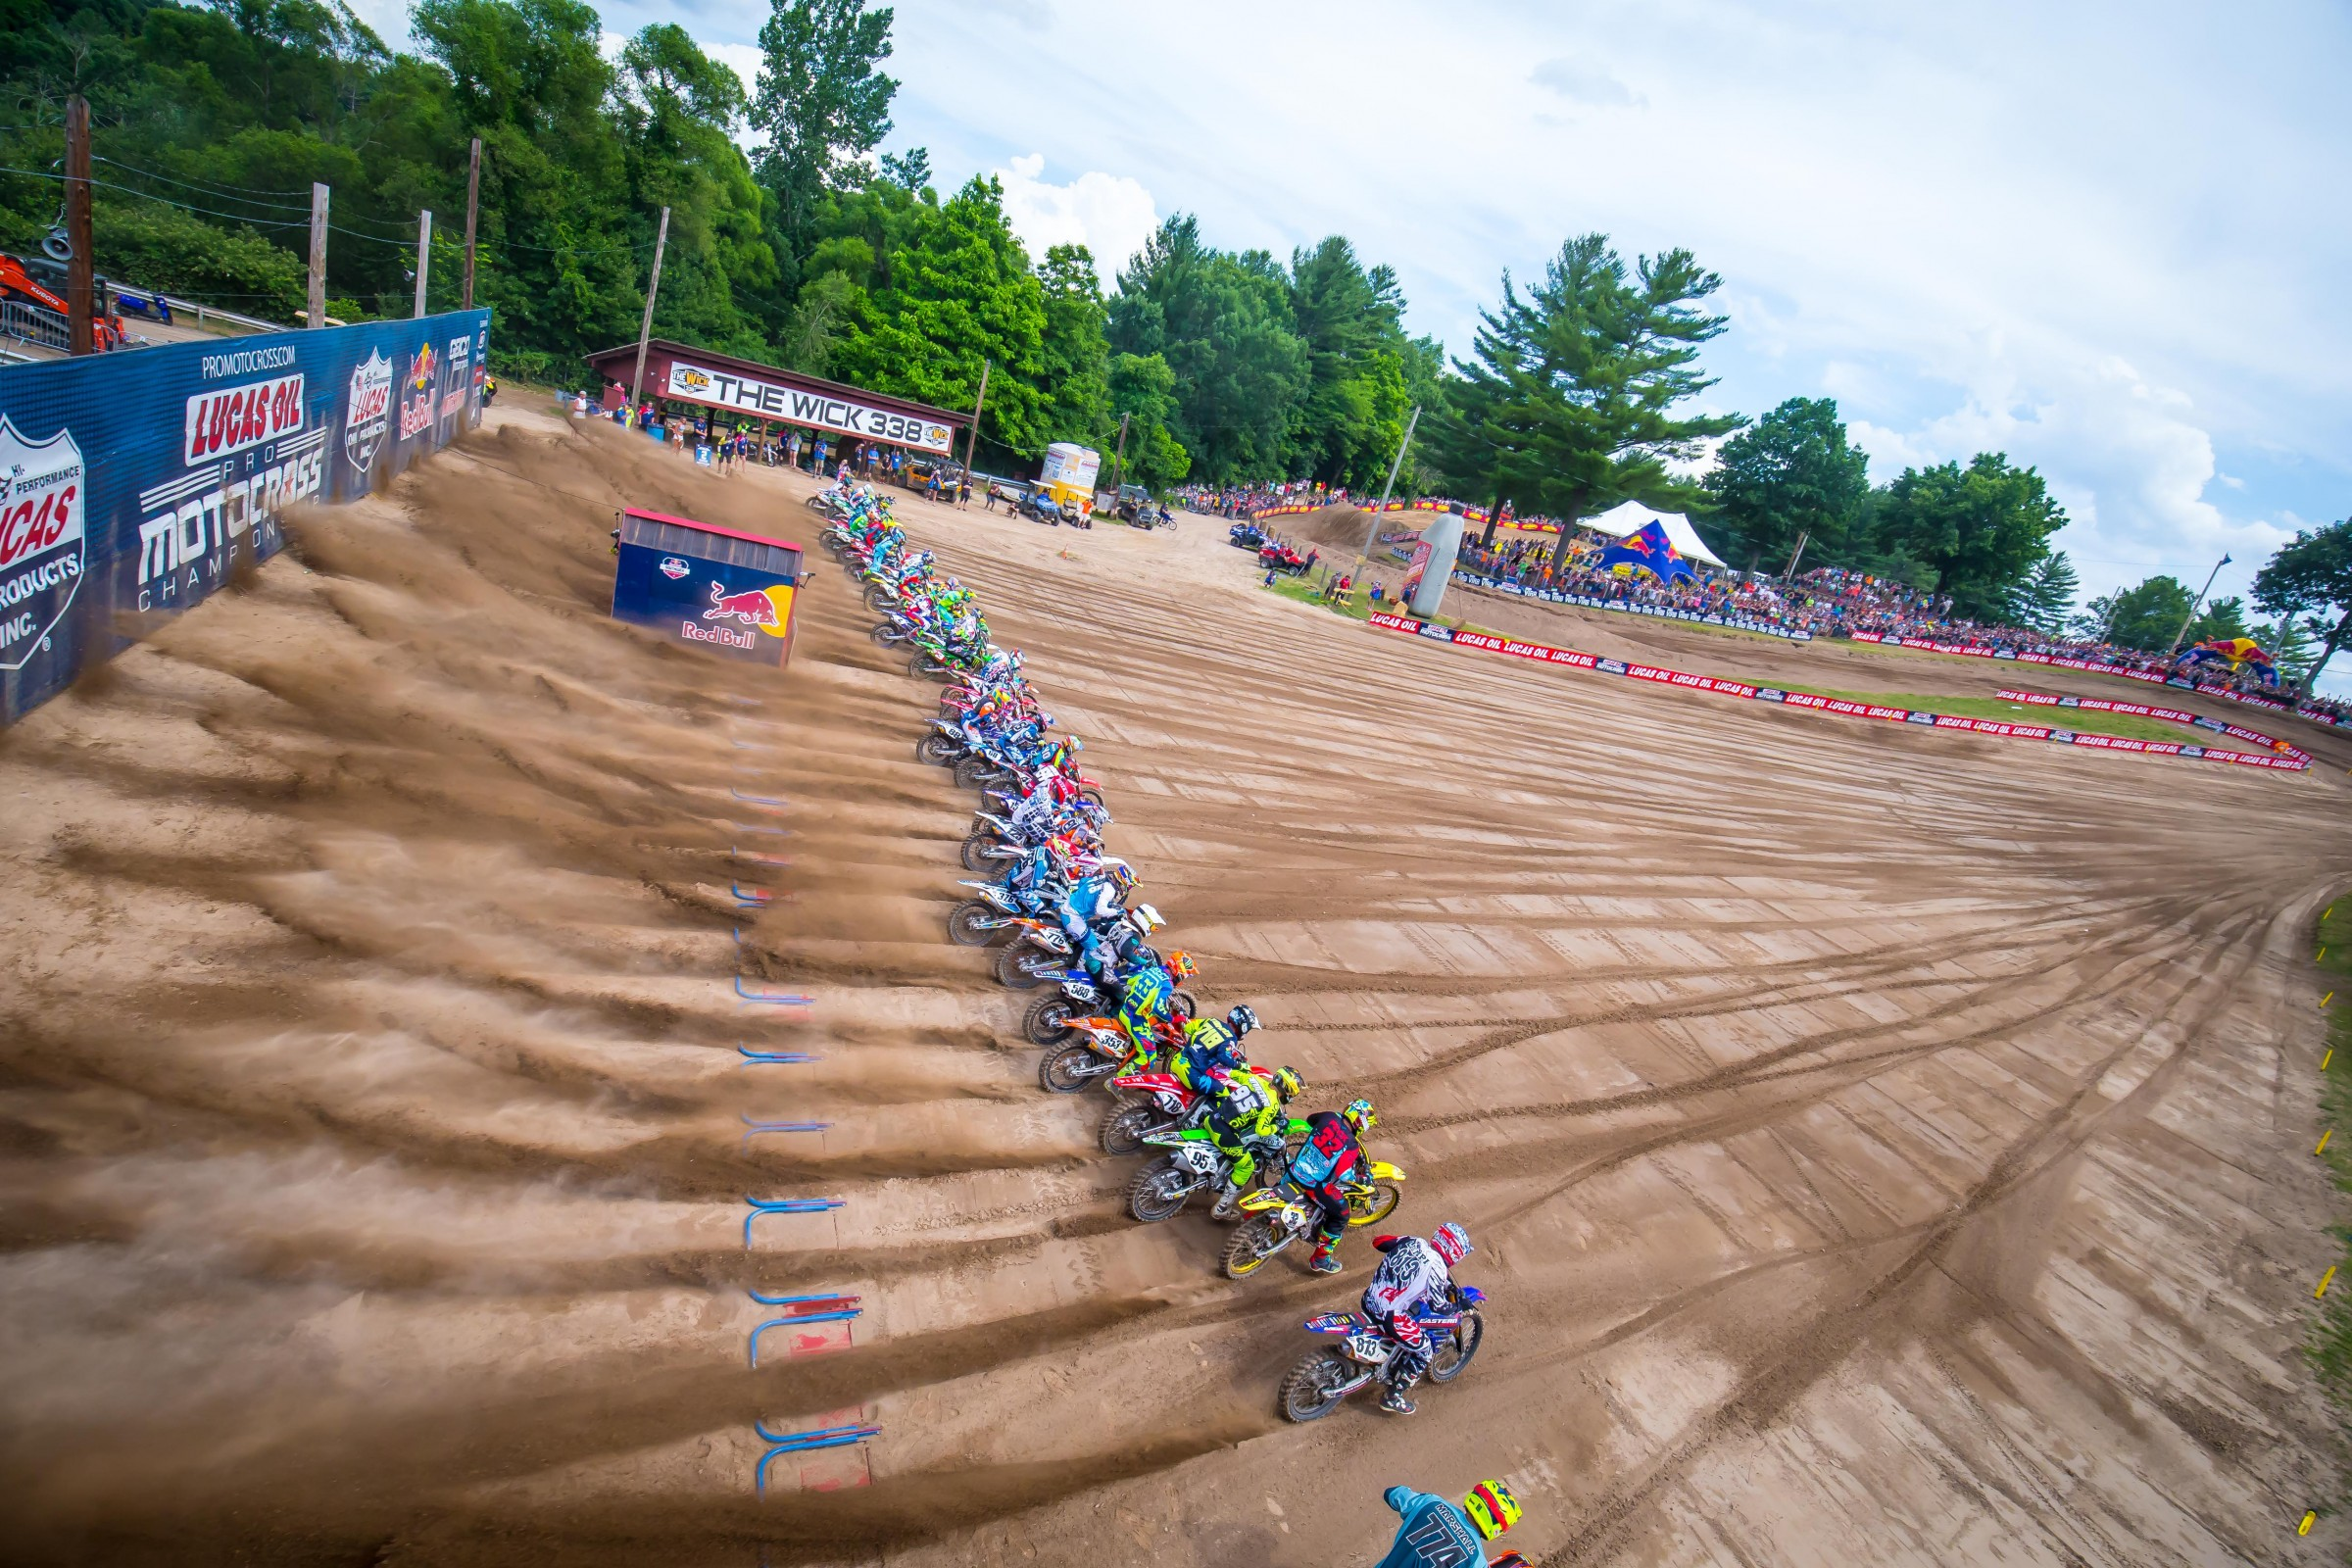 We don't have many photos of Weege moving, so here's a cool shot of the start at Southwick.